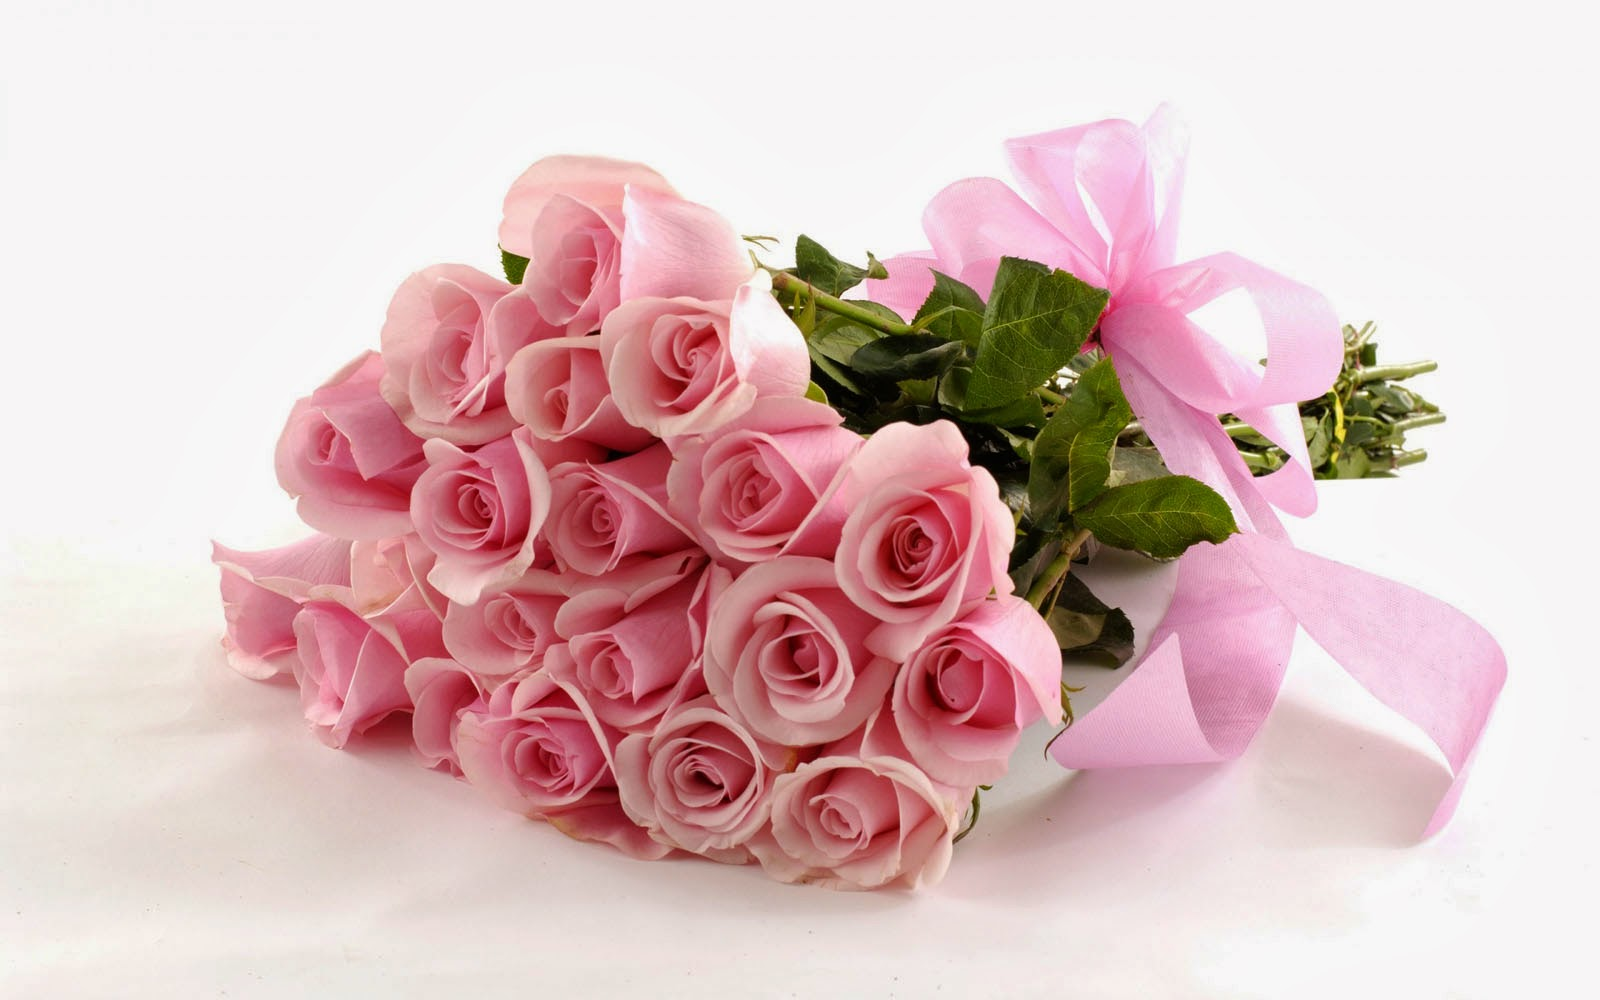 pink rose bouquet wallpaper - wallpapers and pictures